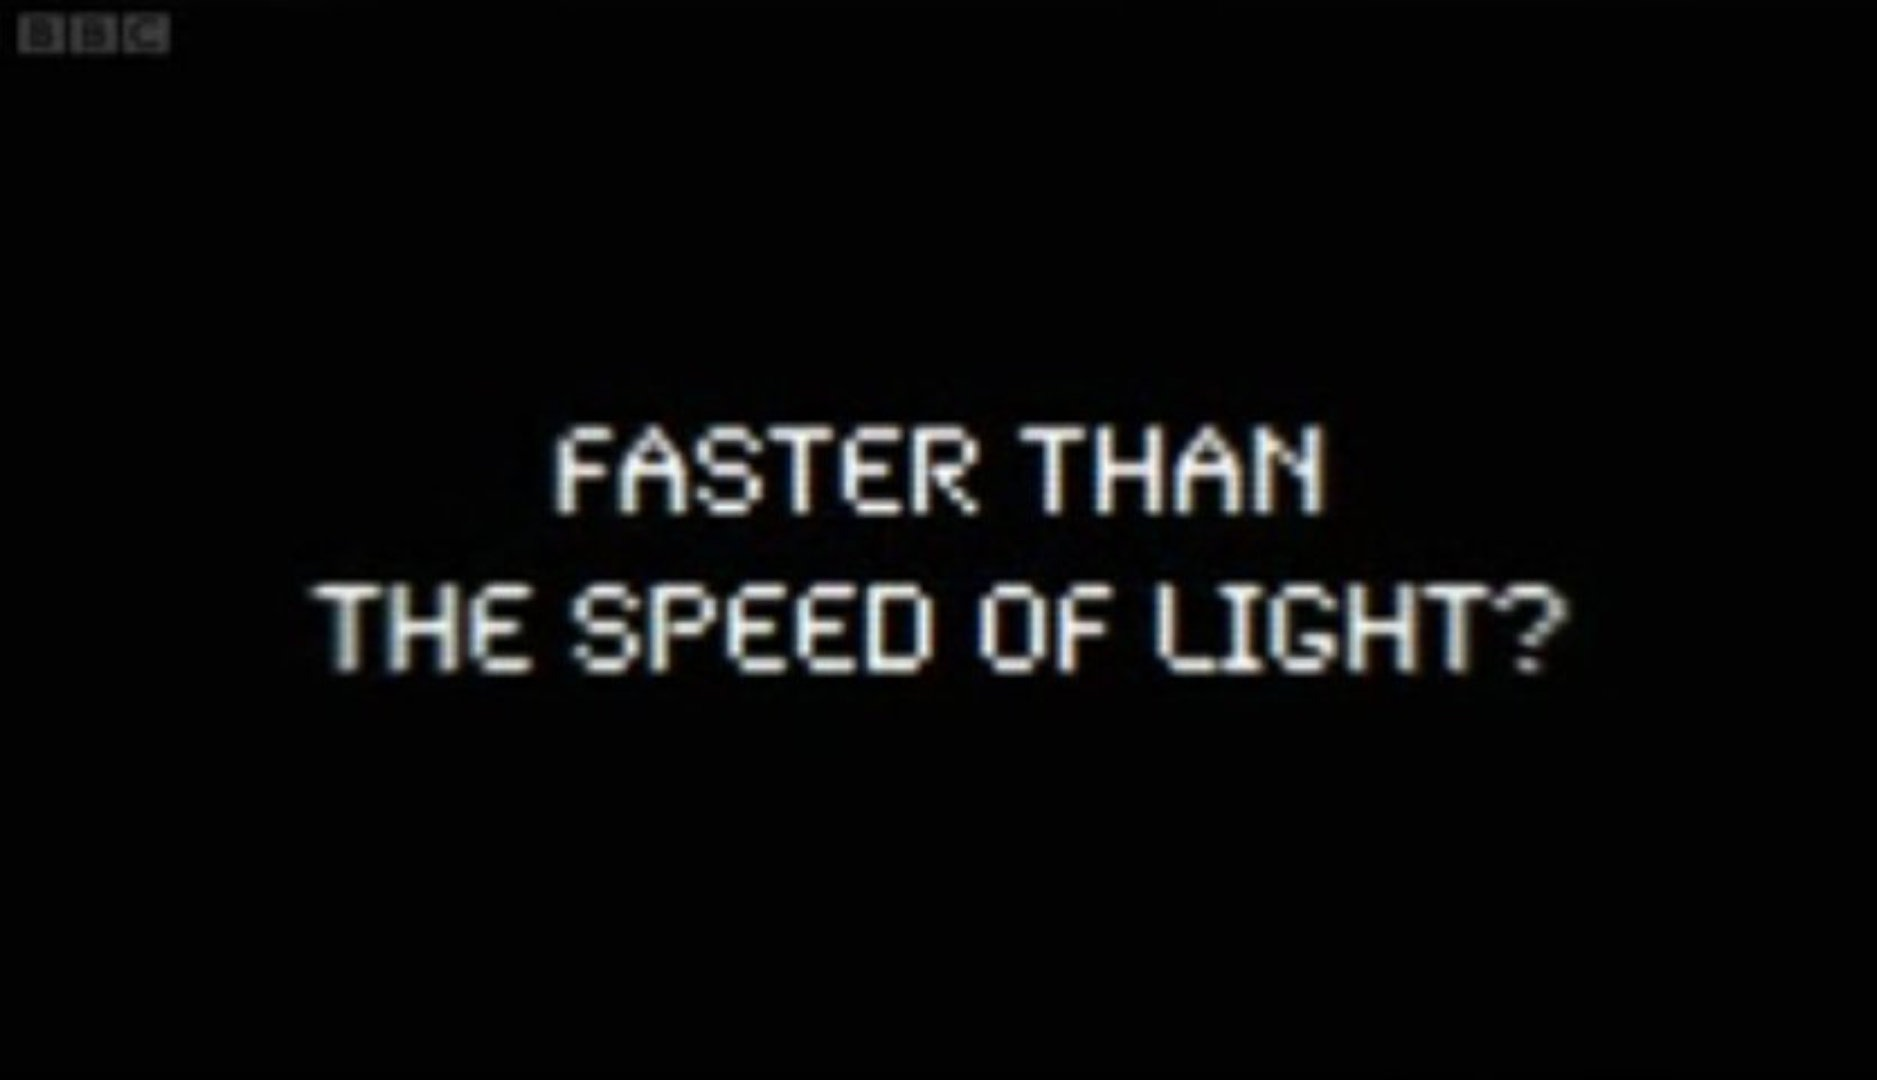 Faster Than the Speed of Light? - Video Dailymotion